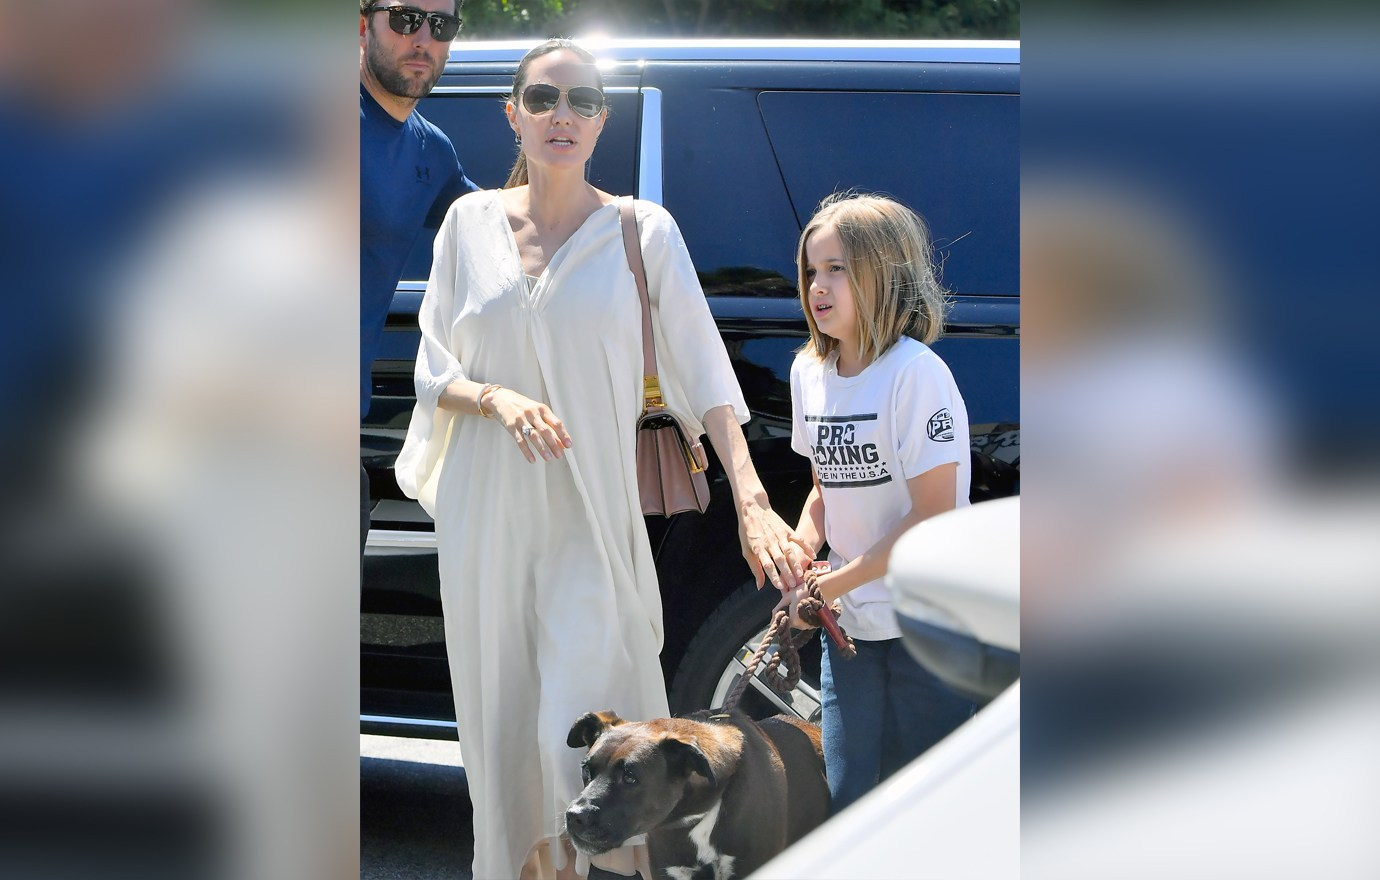 Angelina Jolie and Vivienne Jolie-Pitt head to a dog supply store in Los Angeles